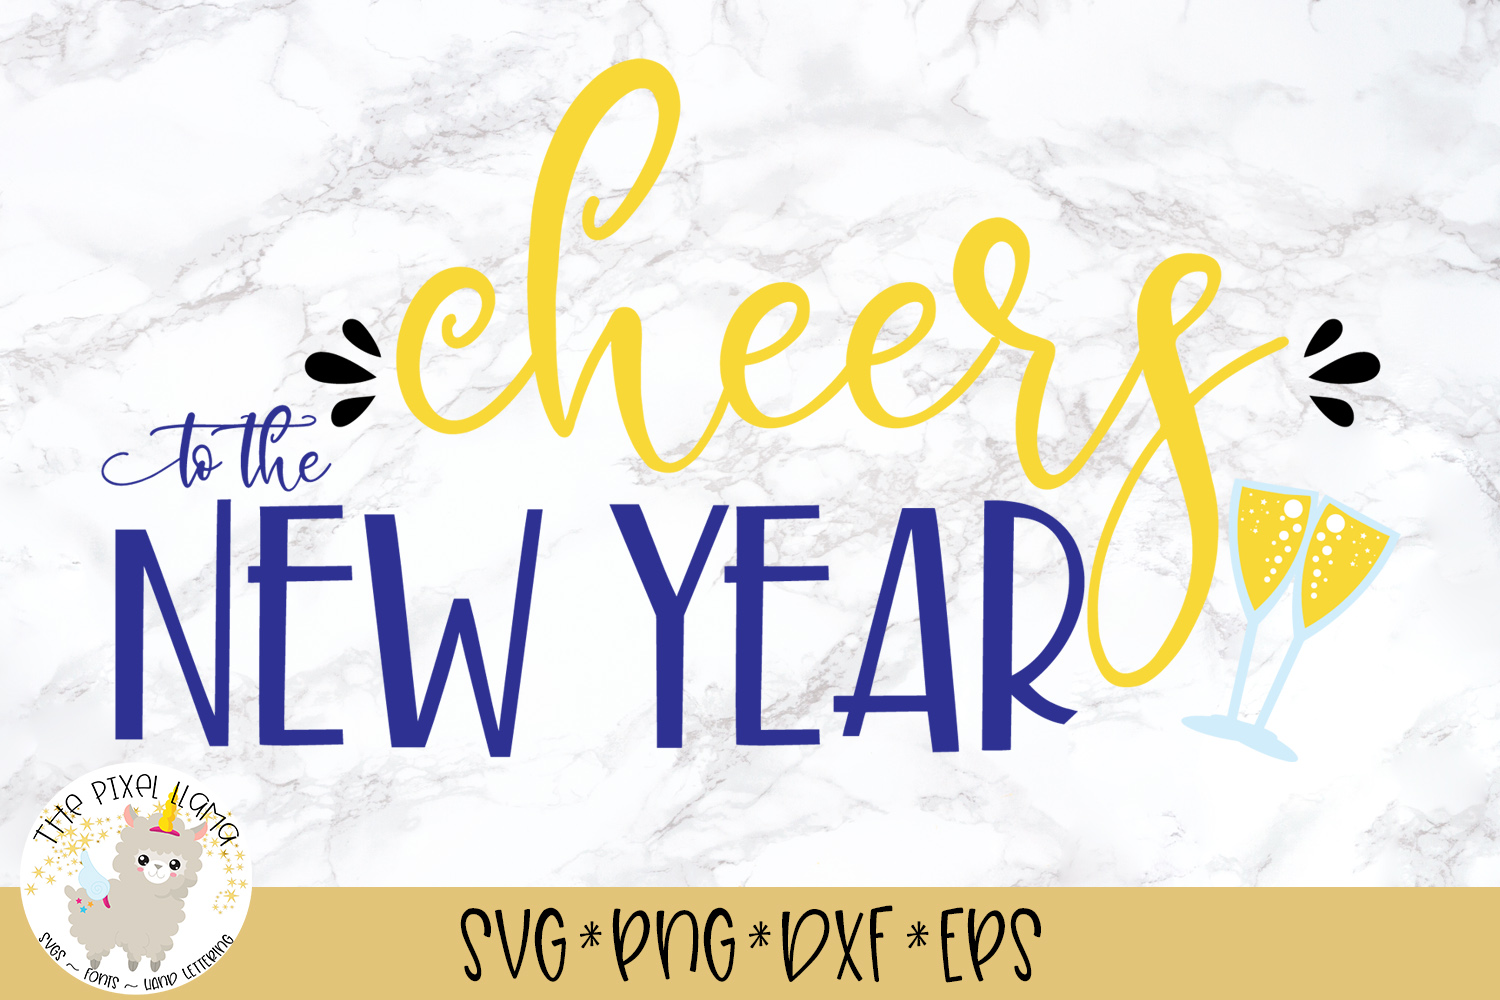 Cheers To The New Year SVG Cut File example image 1